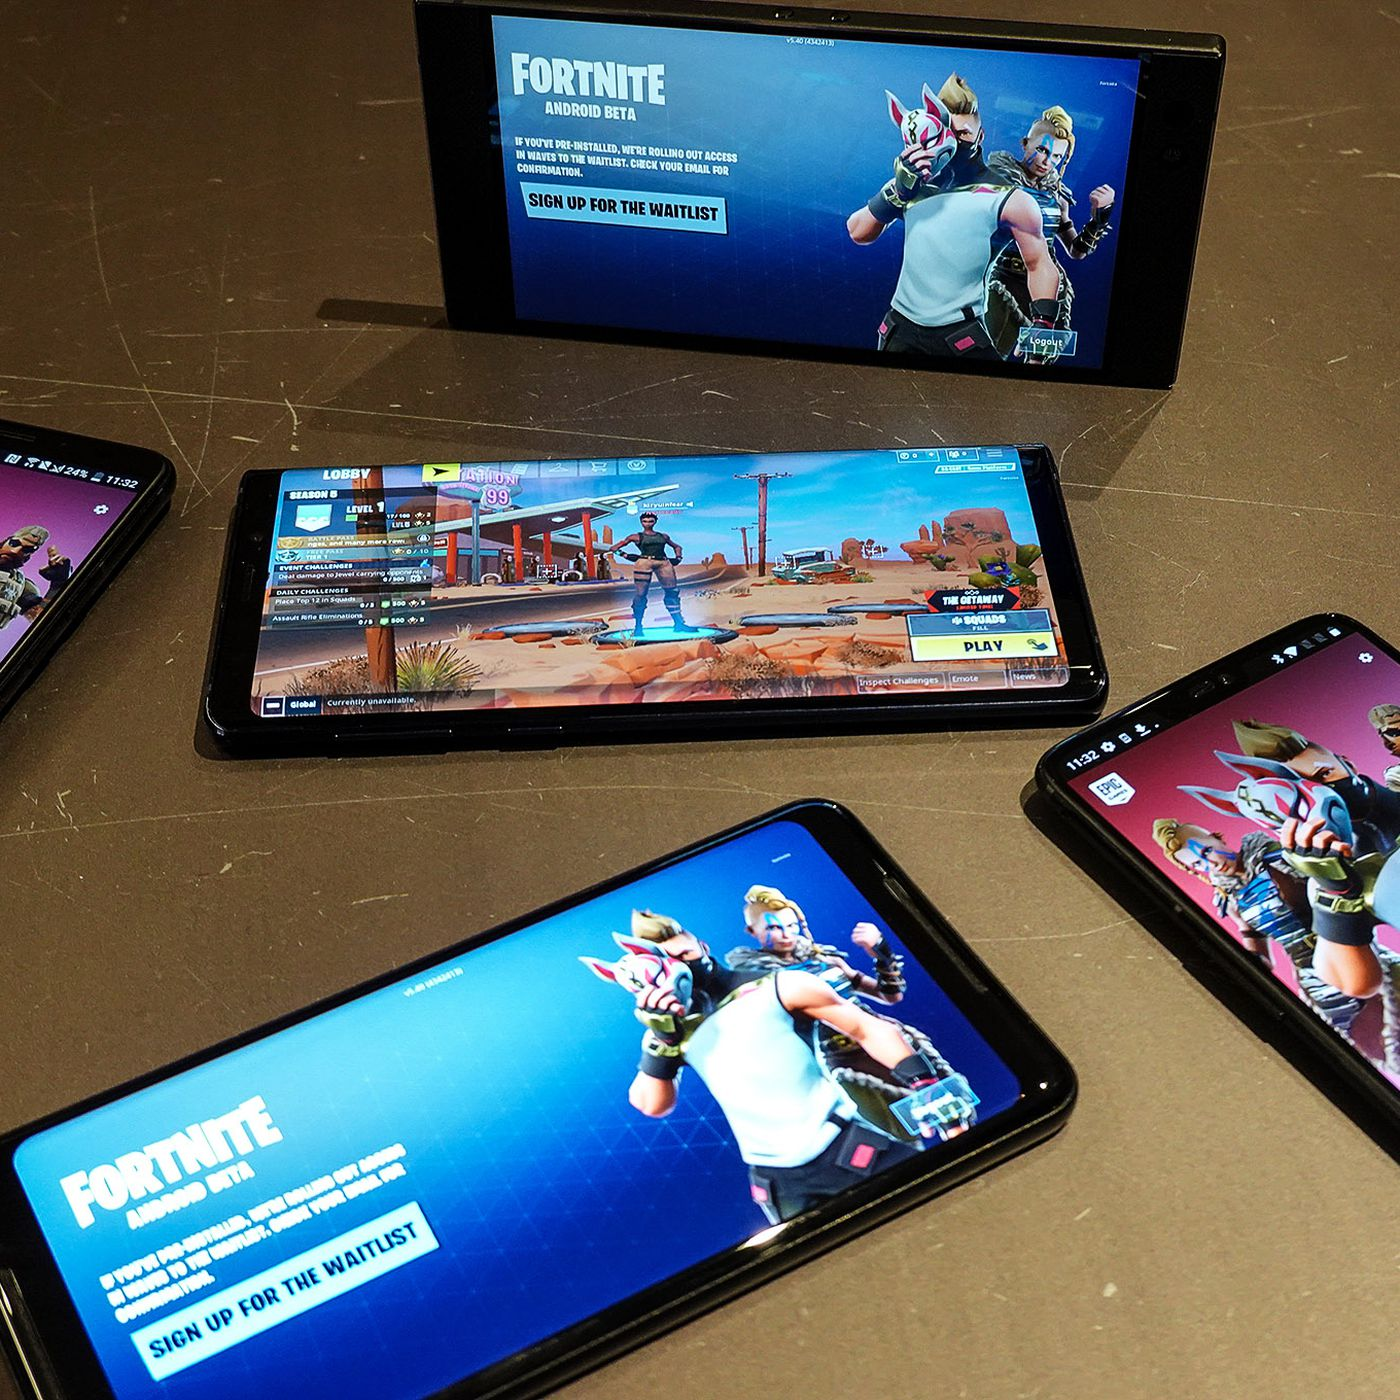 Fortnite keeps stealing dances — and no one knows if it's illegal